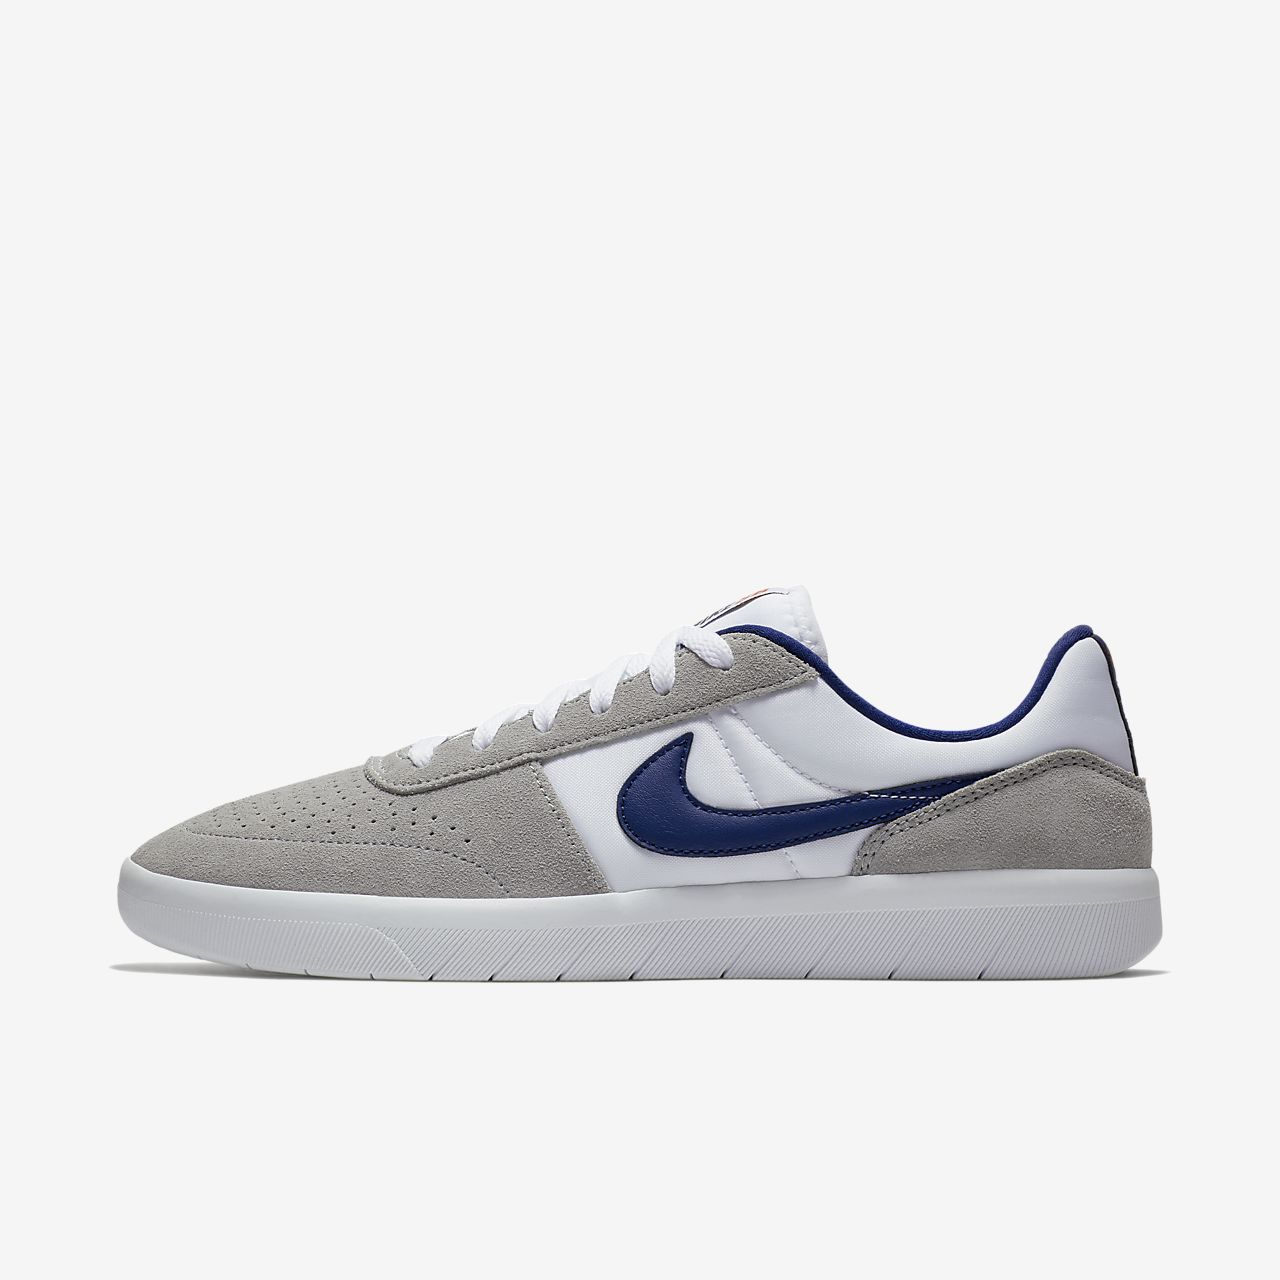 nike sb team classic men�s skateboarding shoe nikecom